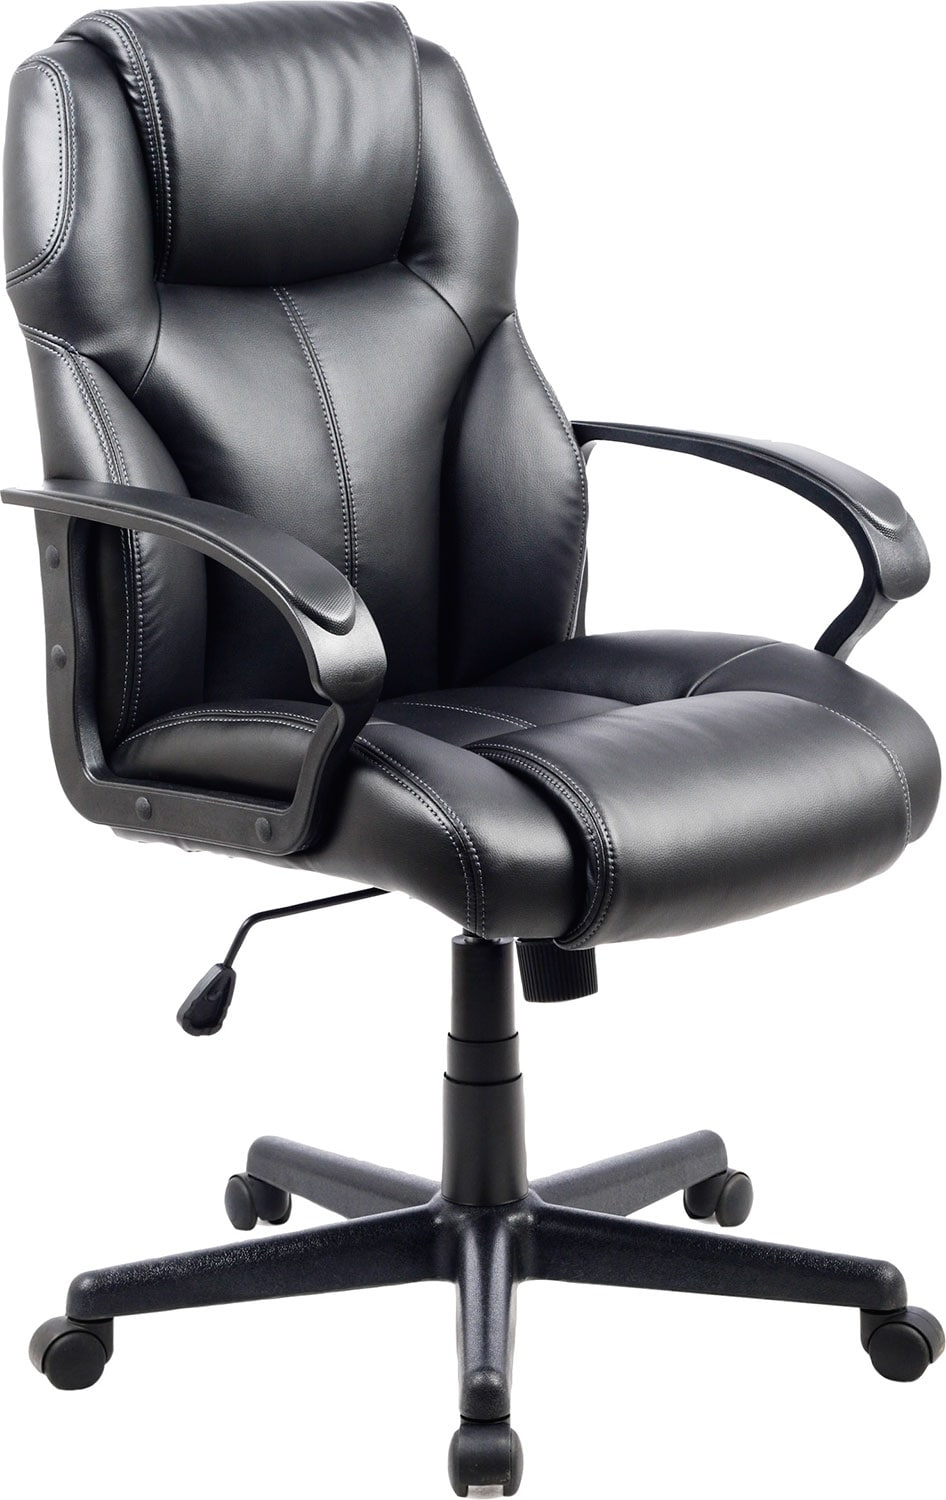 Delson Black Foam-Padded Executive Office Chair | The Brick